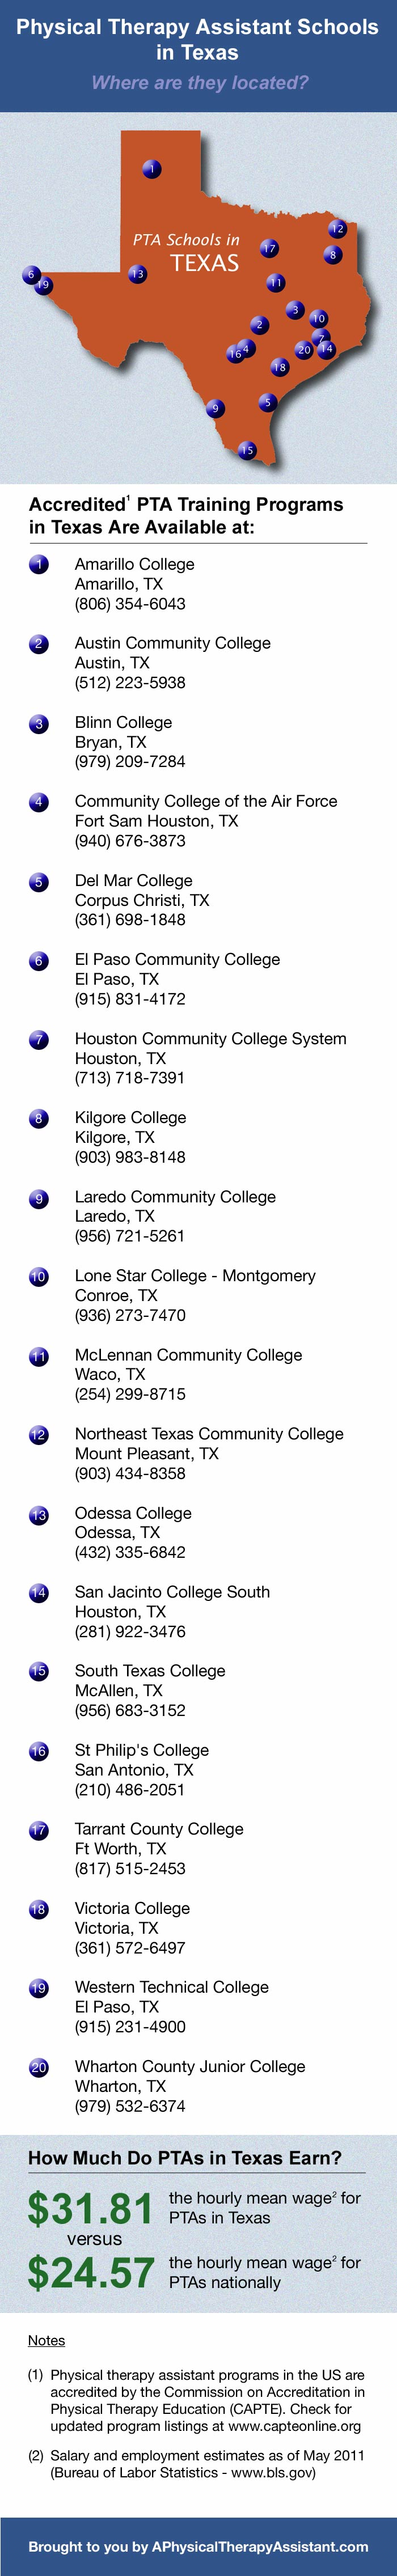 Physical Therapist Assistant Schools In Texas Where They Are At A